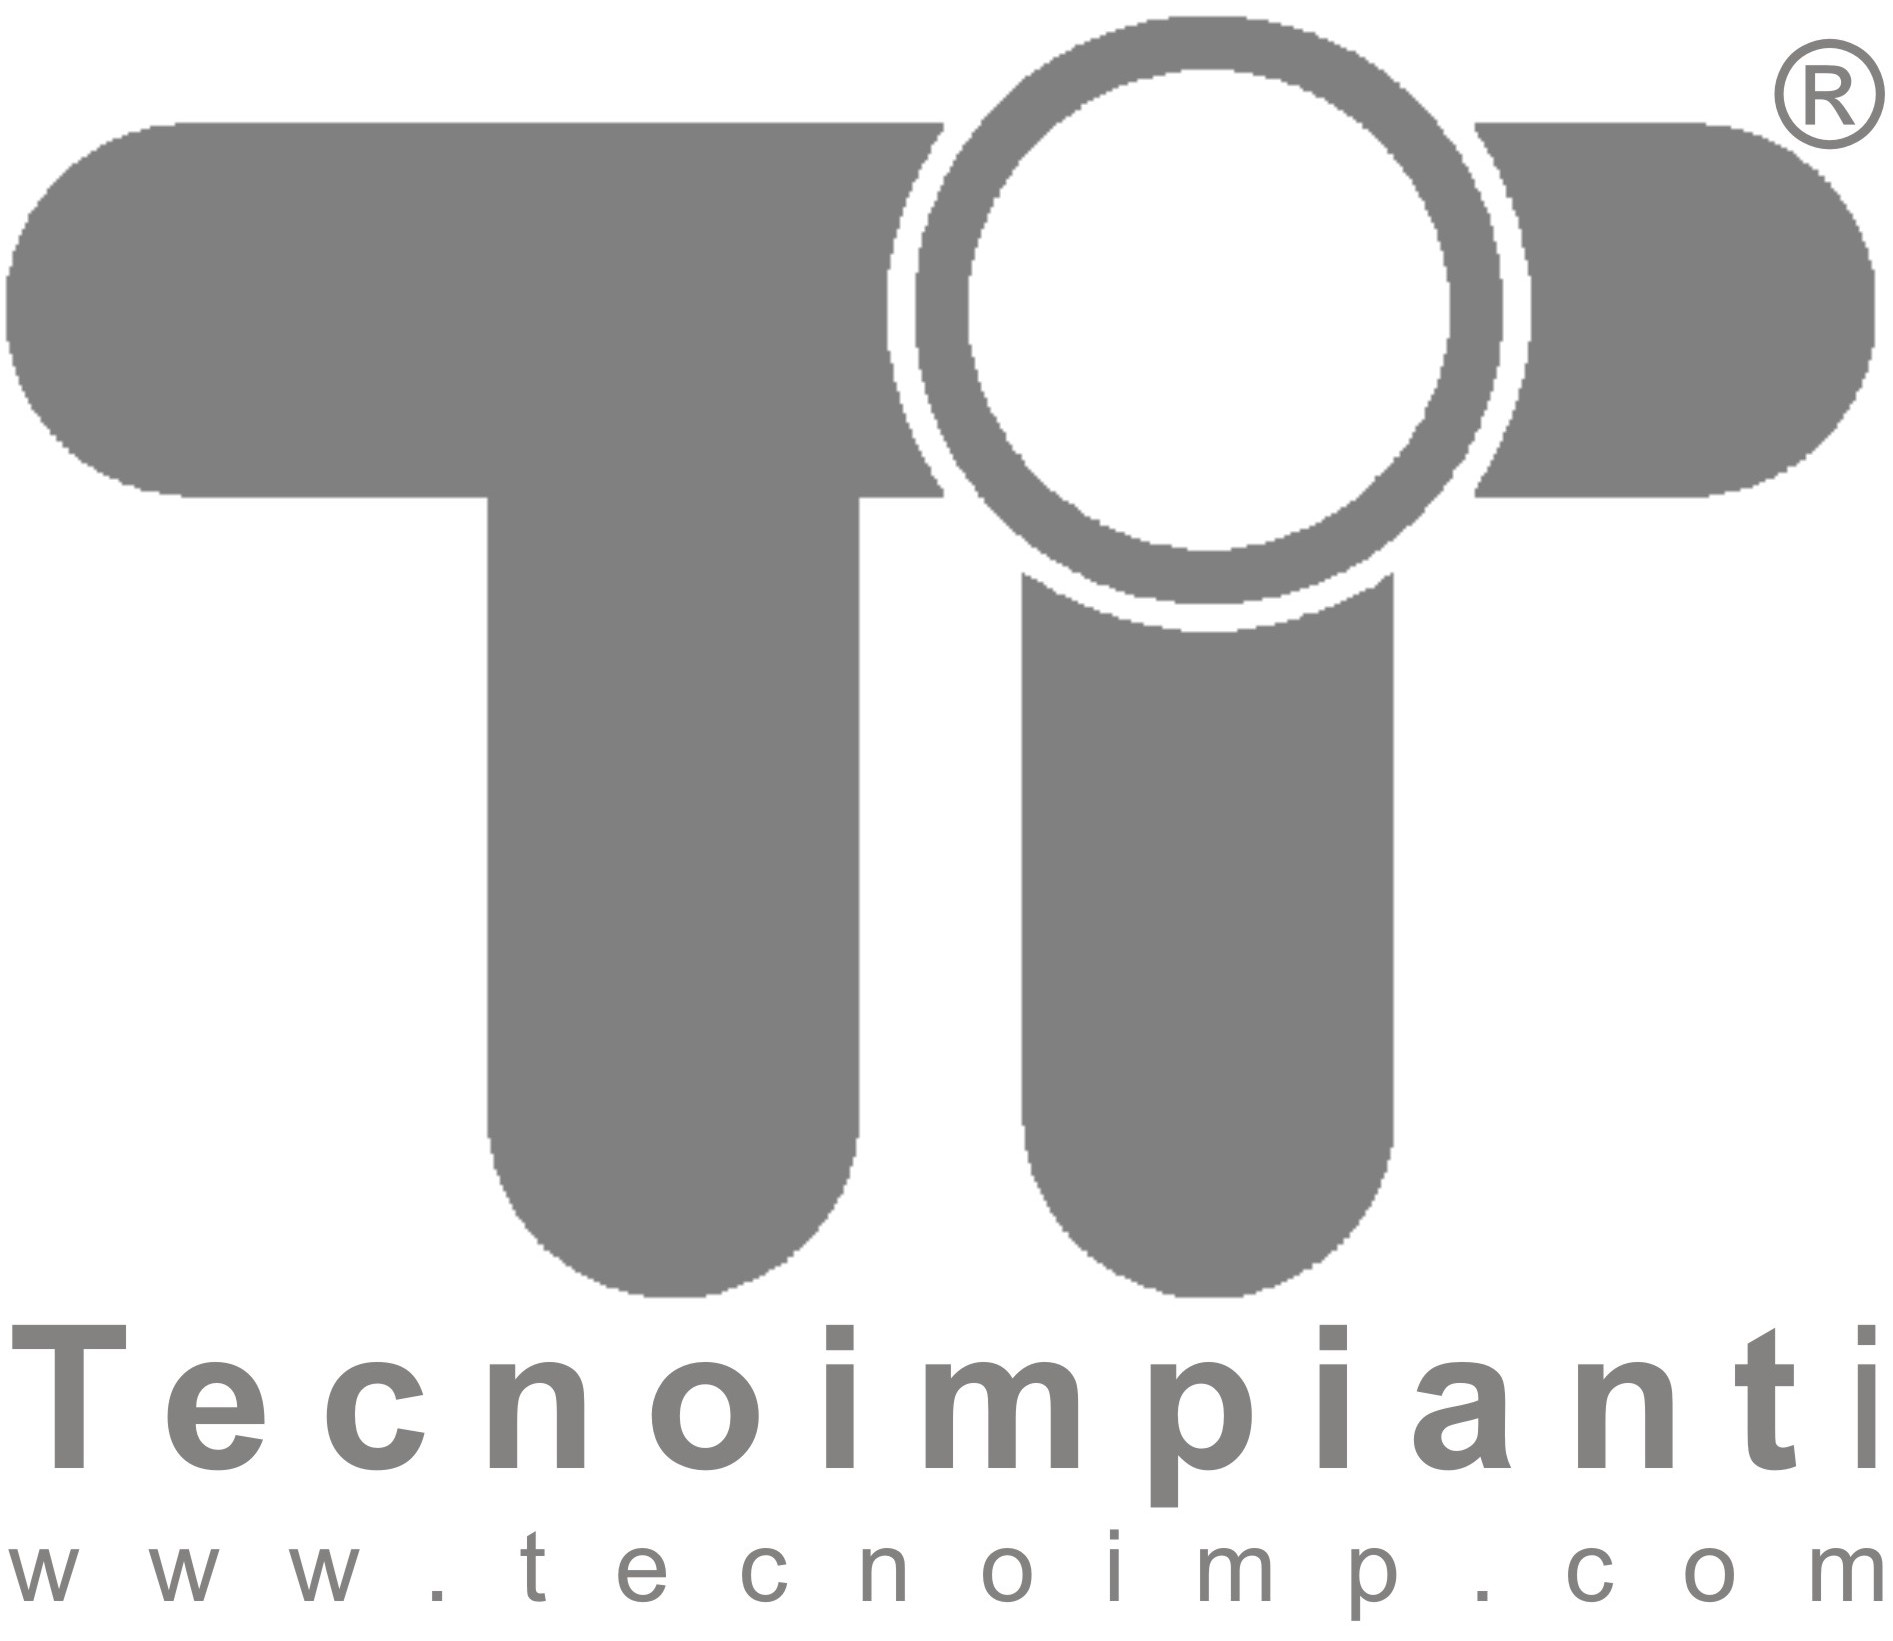 tecnoimpianti-water-trearment-s-r-l